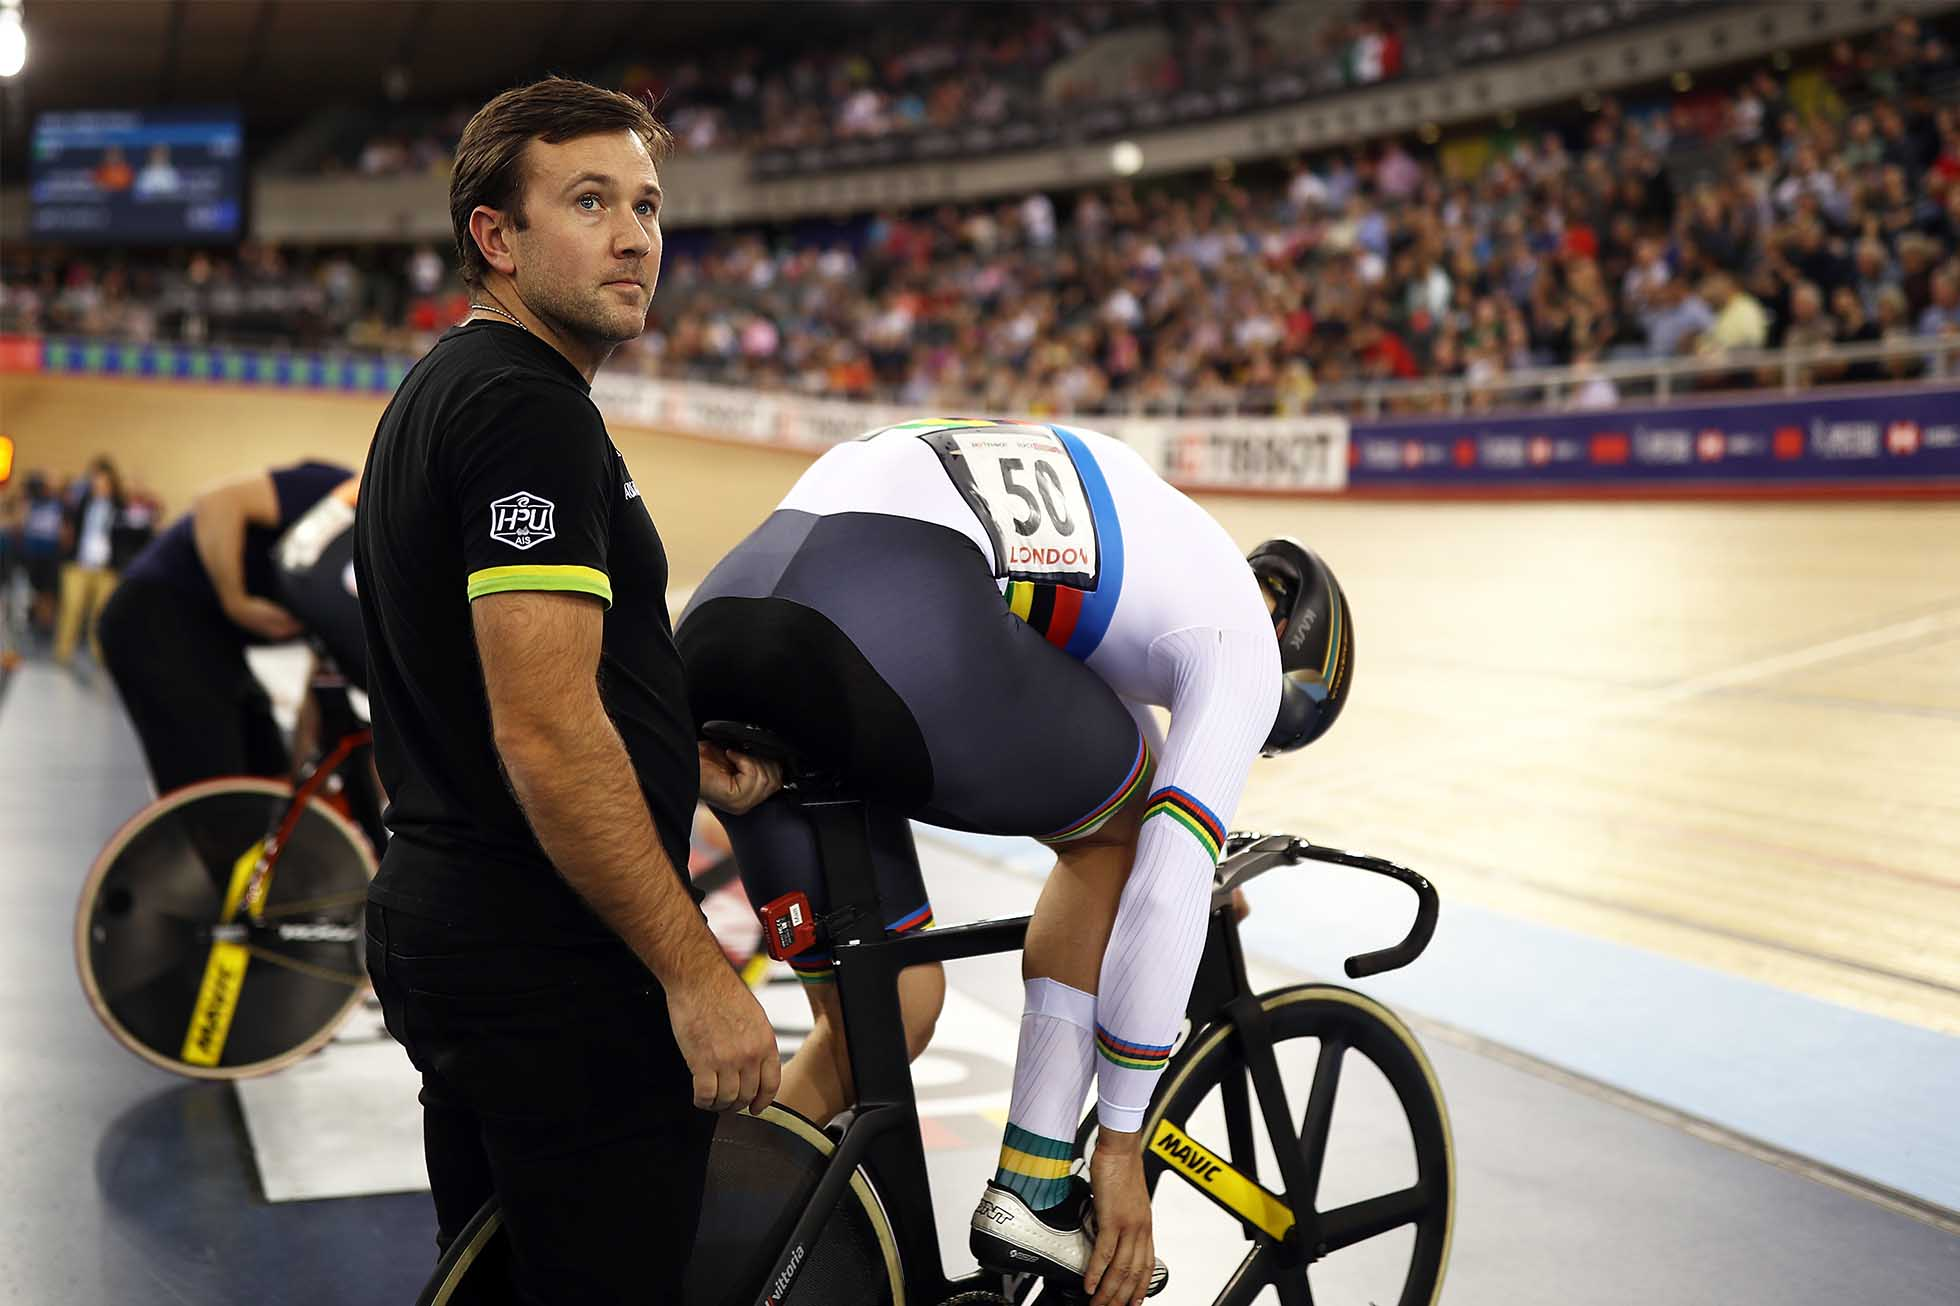 LONDON, ENGLAND - DECEMBER 16: Ross Edgar assists Mathew Glaetzer of Australia during day three of the 2018 TISSOT UCI Track Cycling World Cup at Lee Valley Velopark Velodrome on December 16, 2018 in London, England. (Photo by Bryn Lennon/Getty Images)